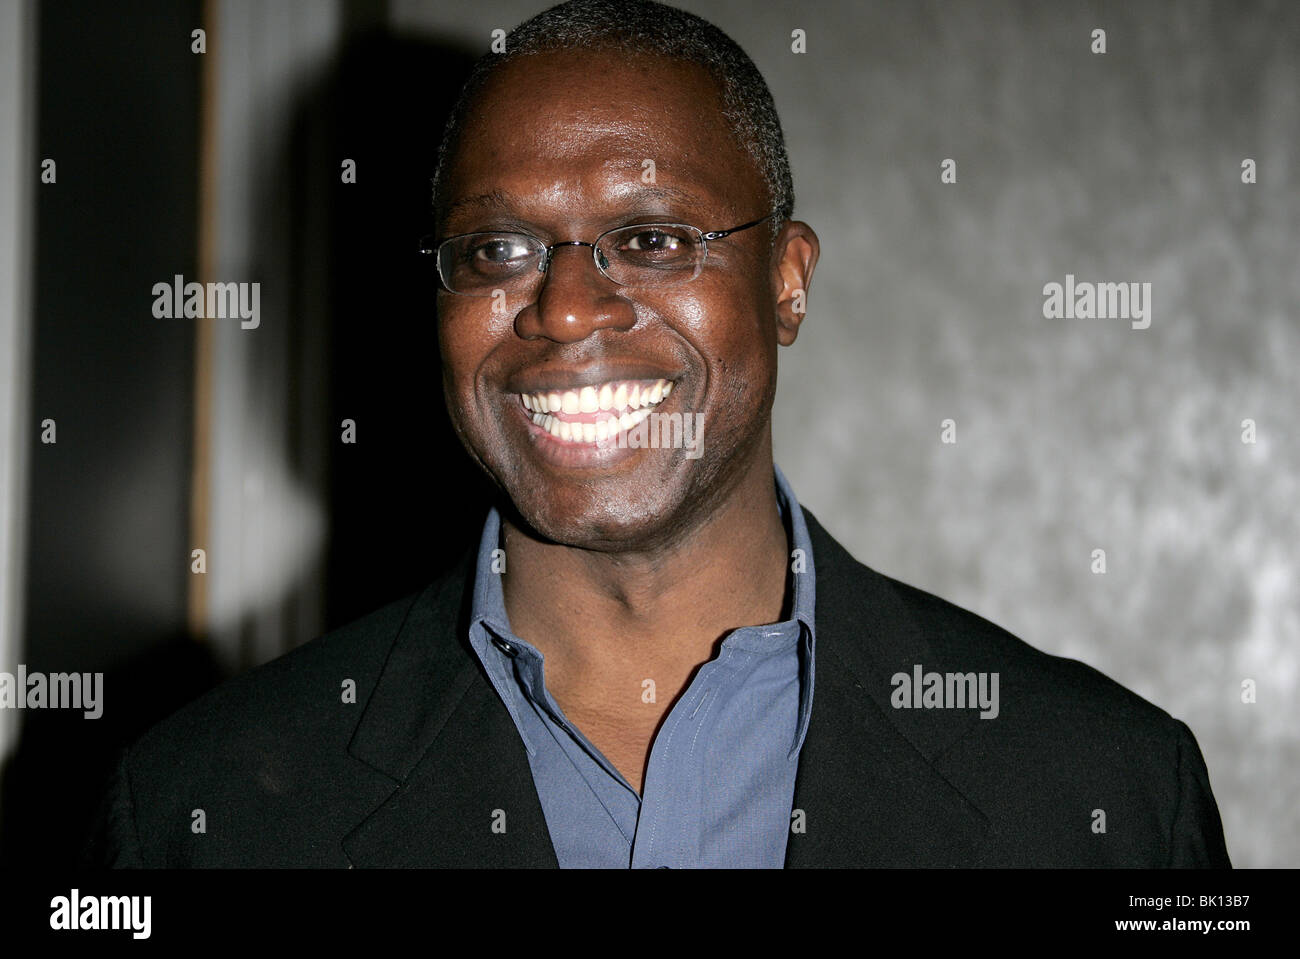 ANDRE BRAUGHER THIEF TV SERIES PREMIERE WEST HOLLYWOOD CALIFORNIA USA 21 March 2006 - Stock Image